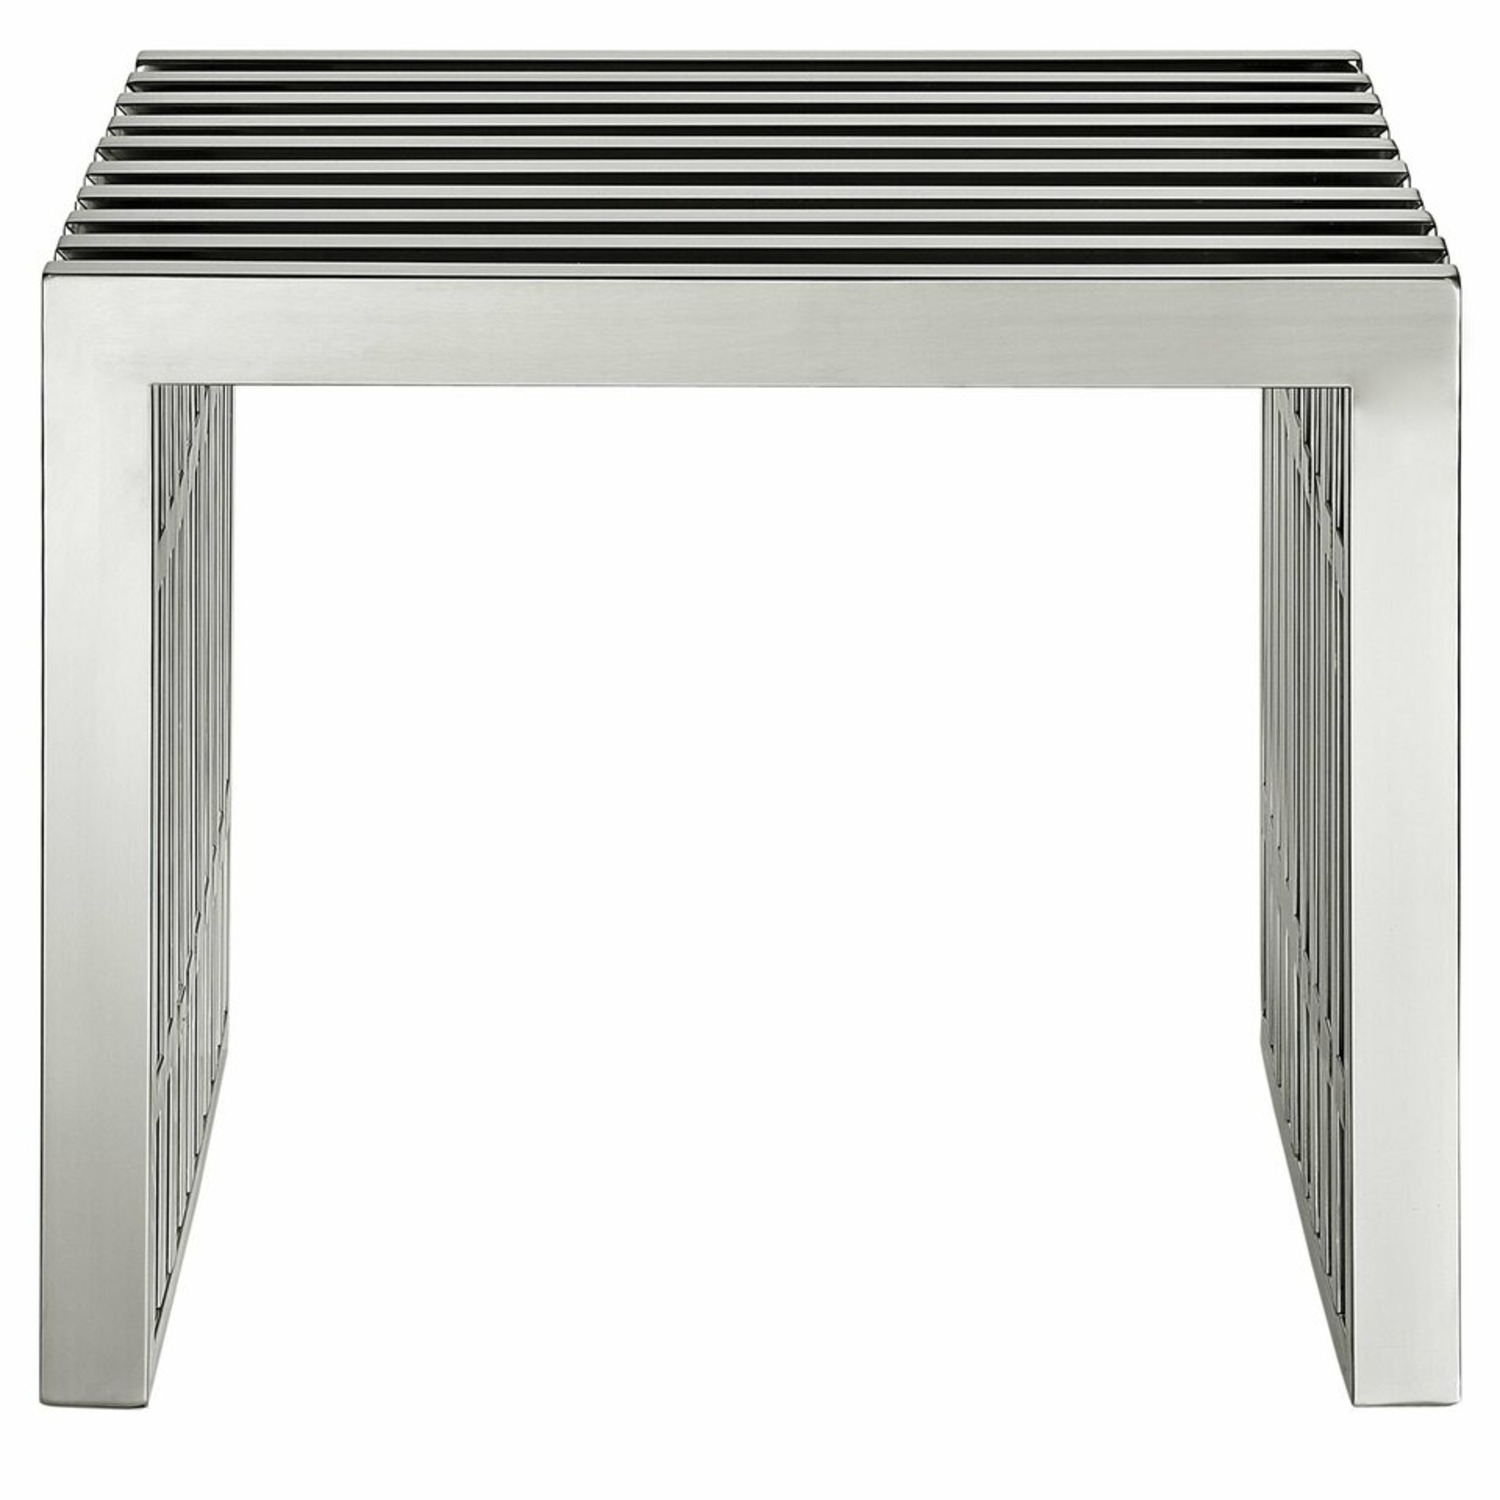 Bench In Stainless Silver Steel Finish - image-1